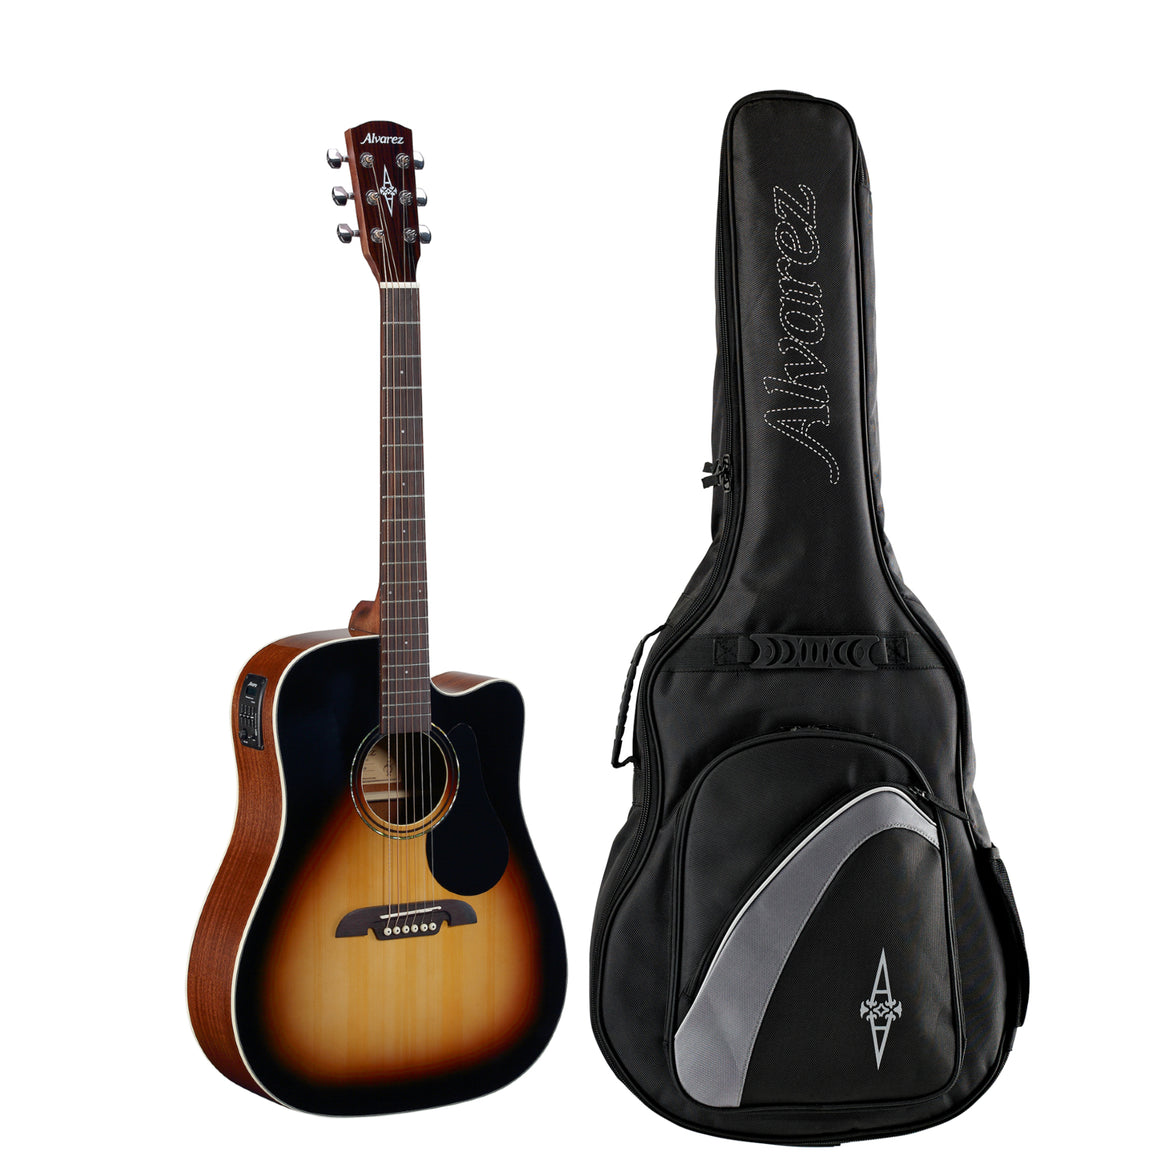 Alvarez Regent RD26CESB Acoustic Electric Sunburst Guitar with Gigbag